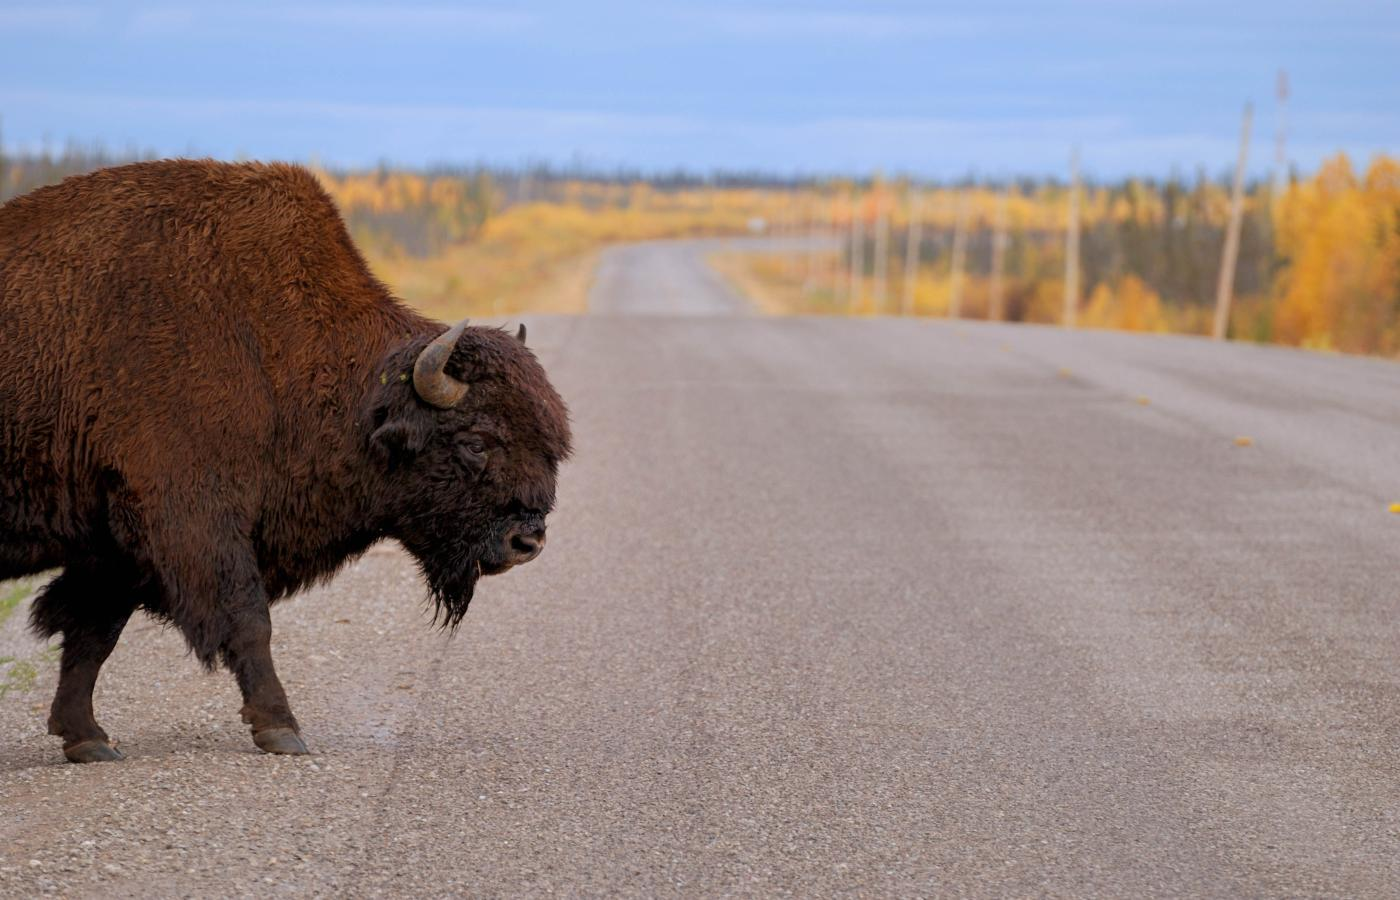 A bison on the road to Yellowknife, Northwest Territories